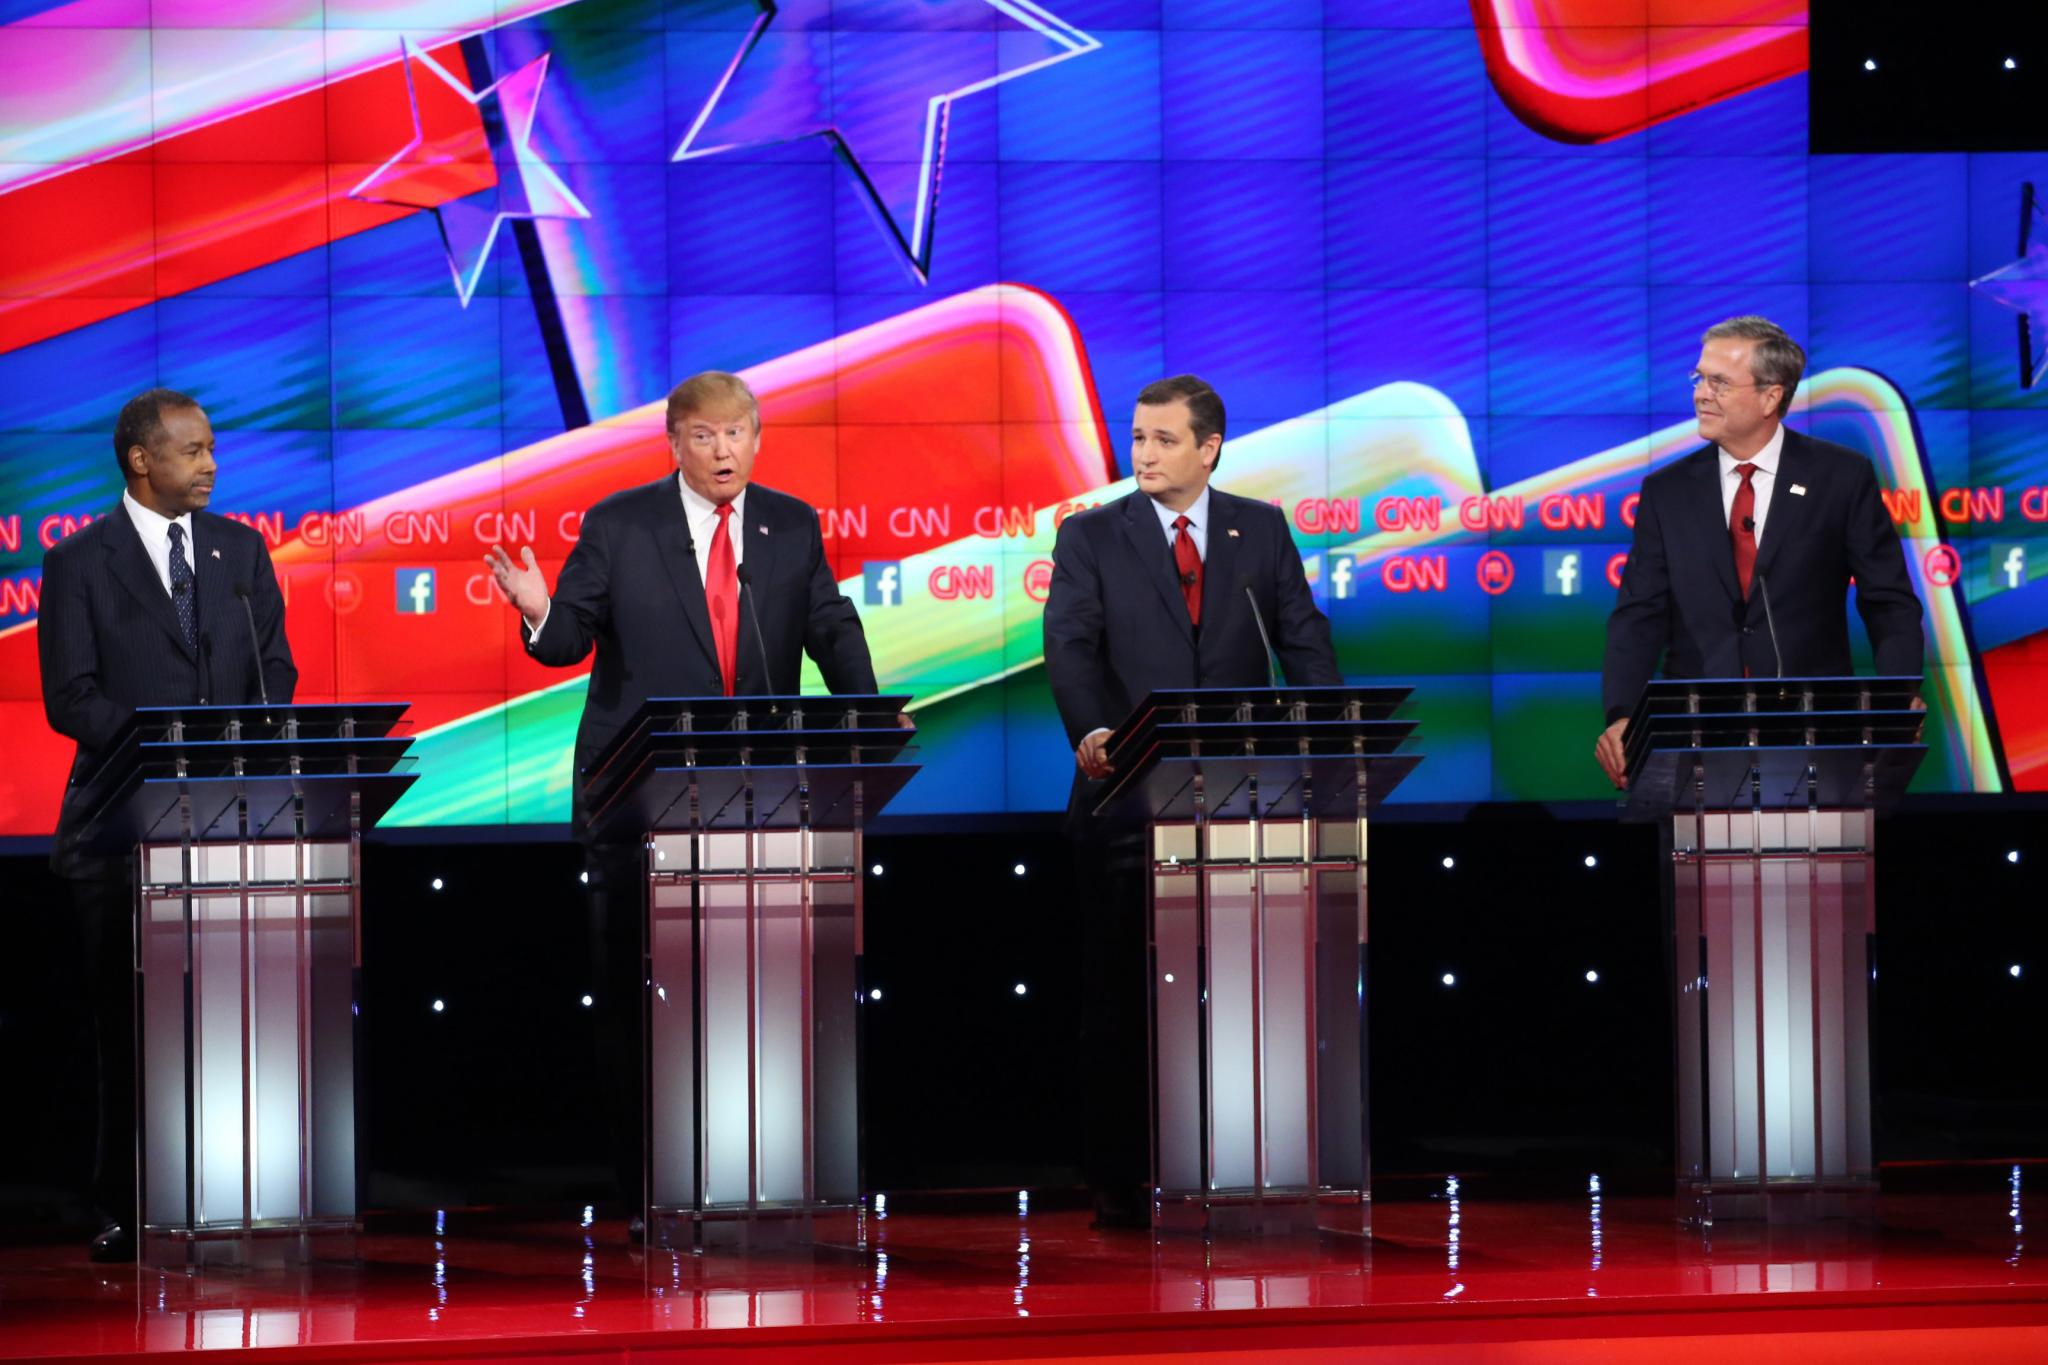 Tuesday Night's Debate Winners, Losers and Why You Should Care